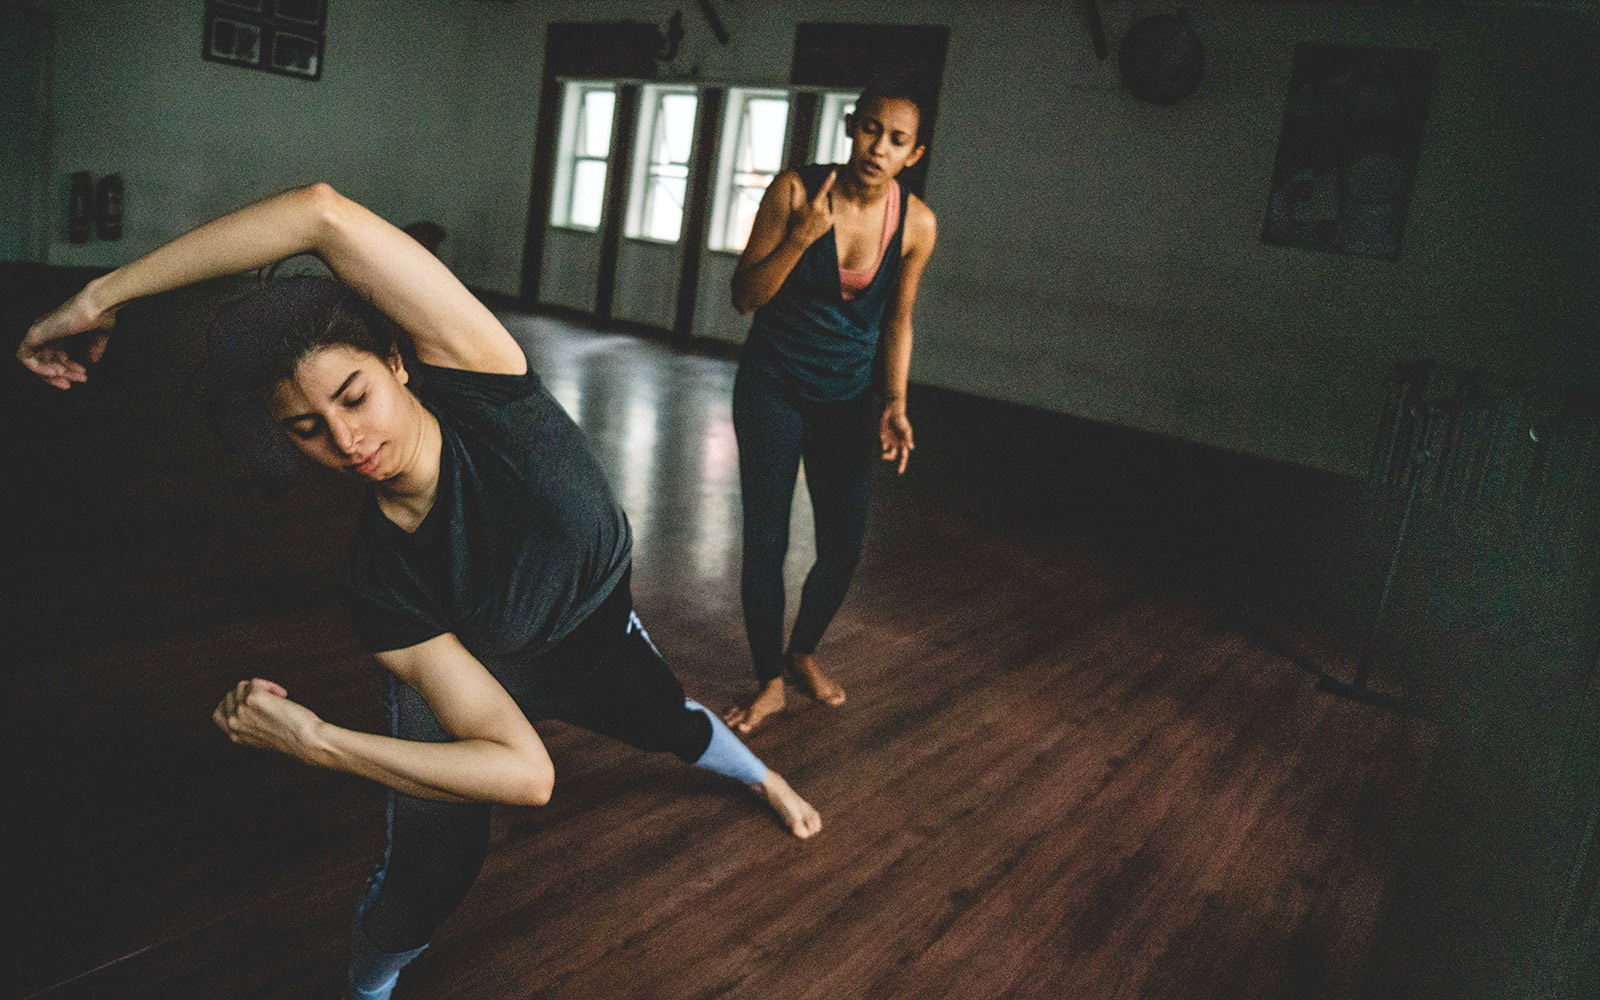 Since graduation, Rajeendra has stayed connected to Denison through a cultural dance exchange. Her students at Mesh Academy travel to Granville to learn from Denison faculty, and Denison students travel to Sri Lanka to study at Mesh.